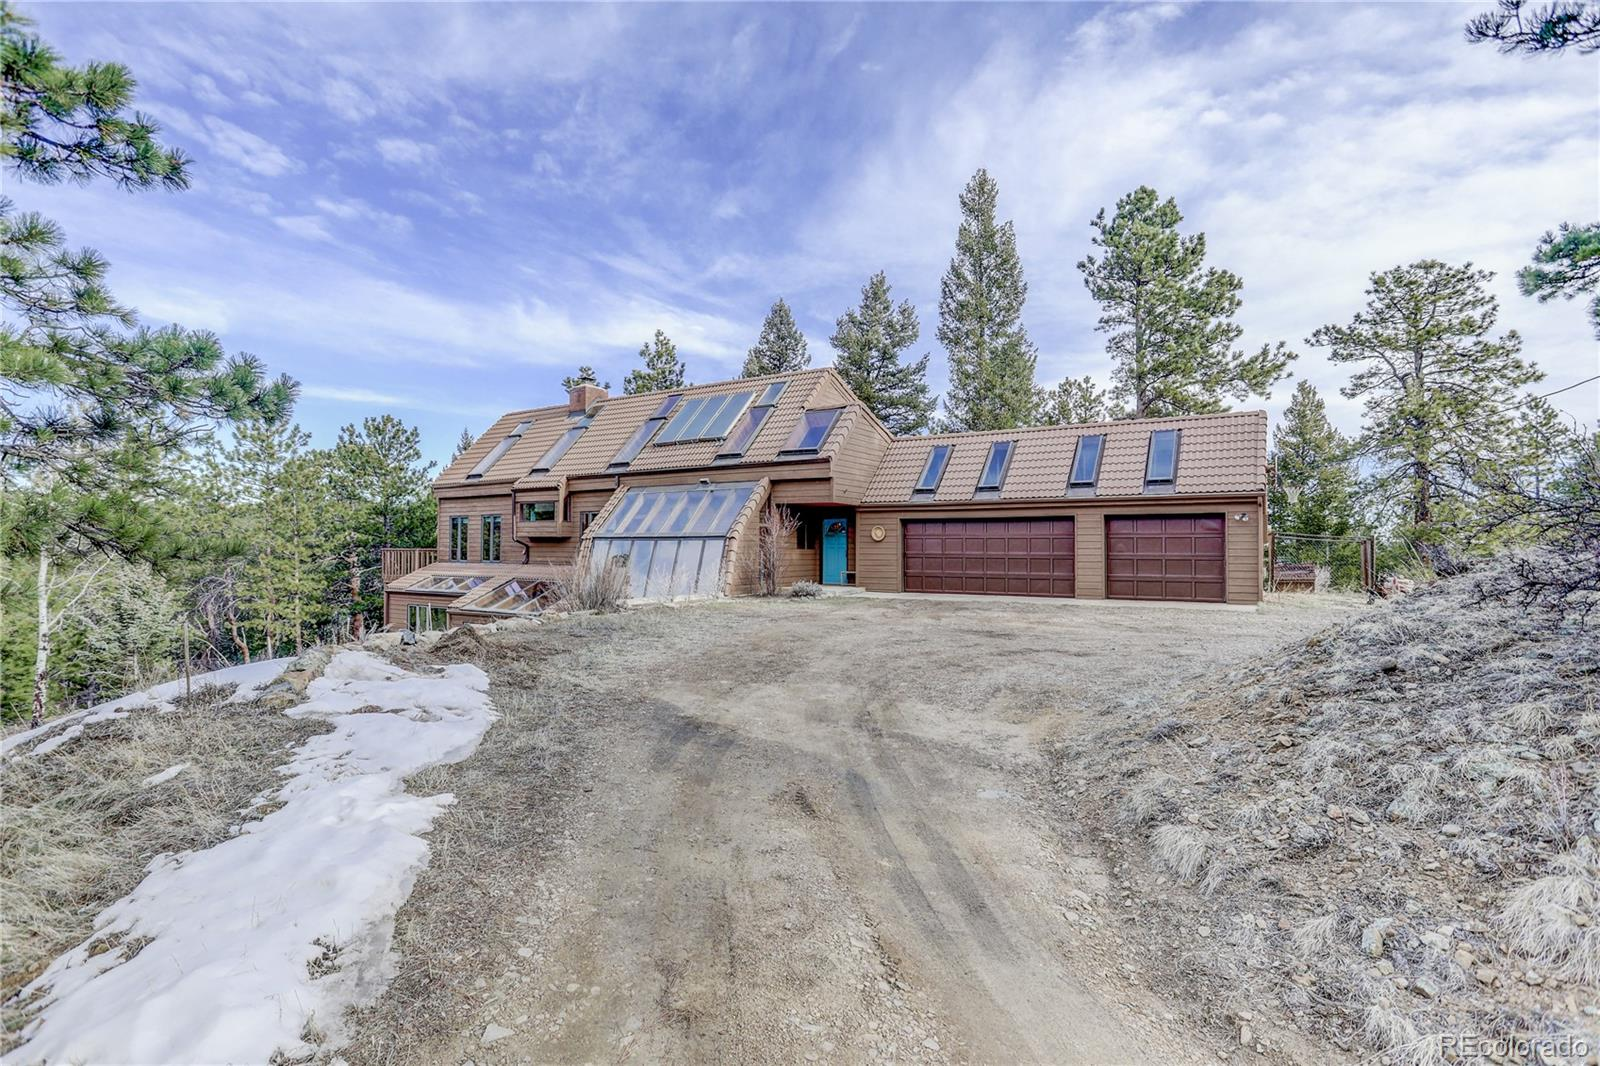 30773 Ruby Ranch Road, Evergreen, CO 80439 - Evergreen, CO real estate listing